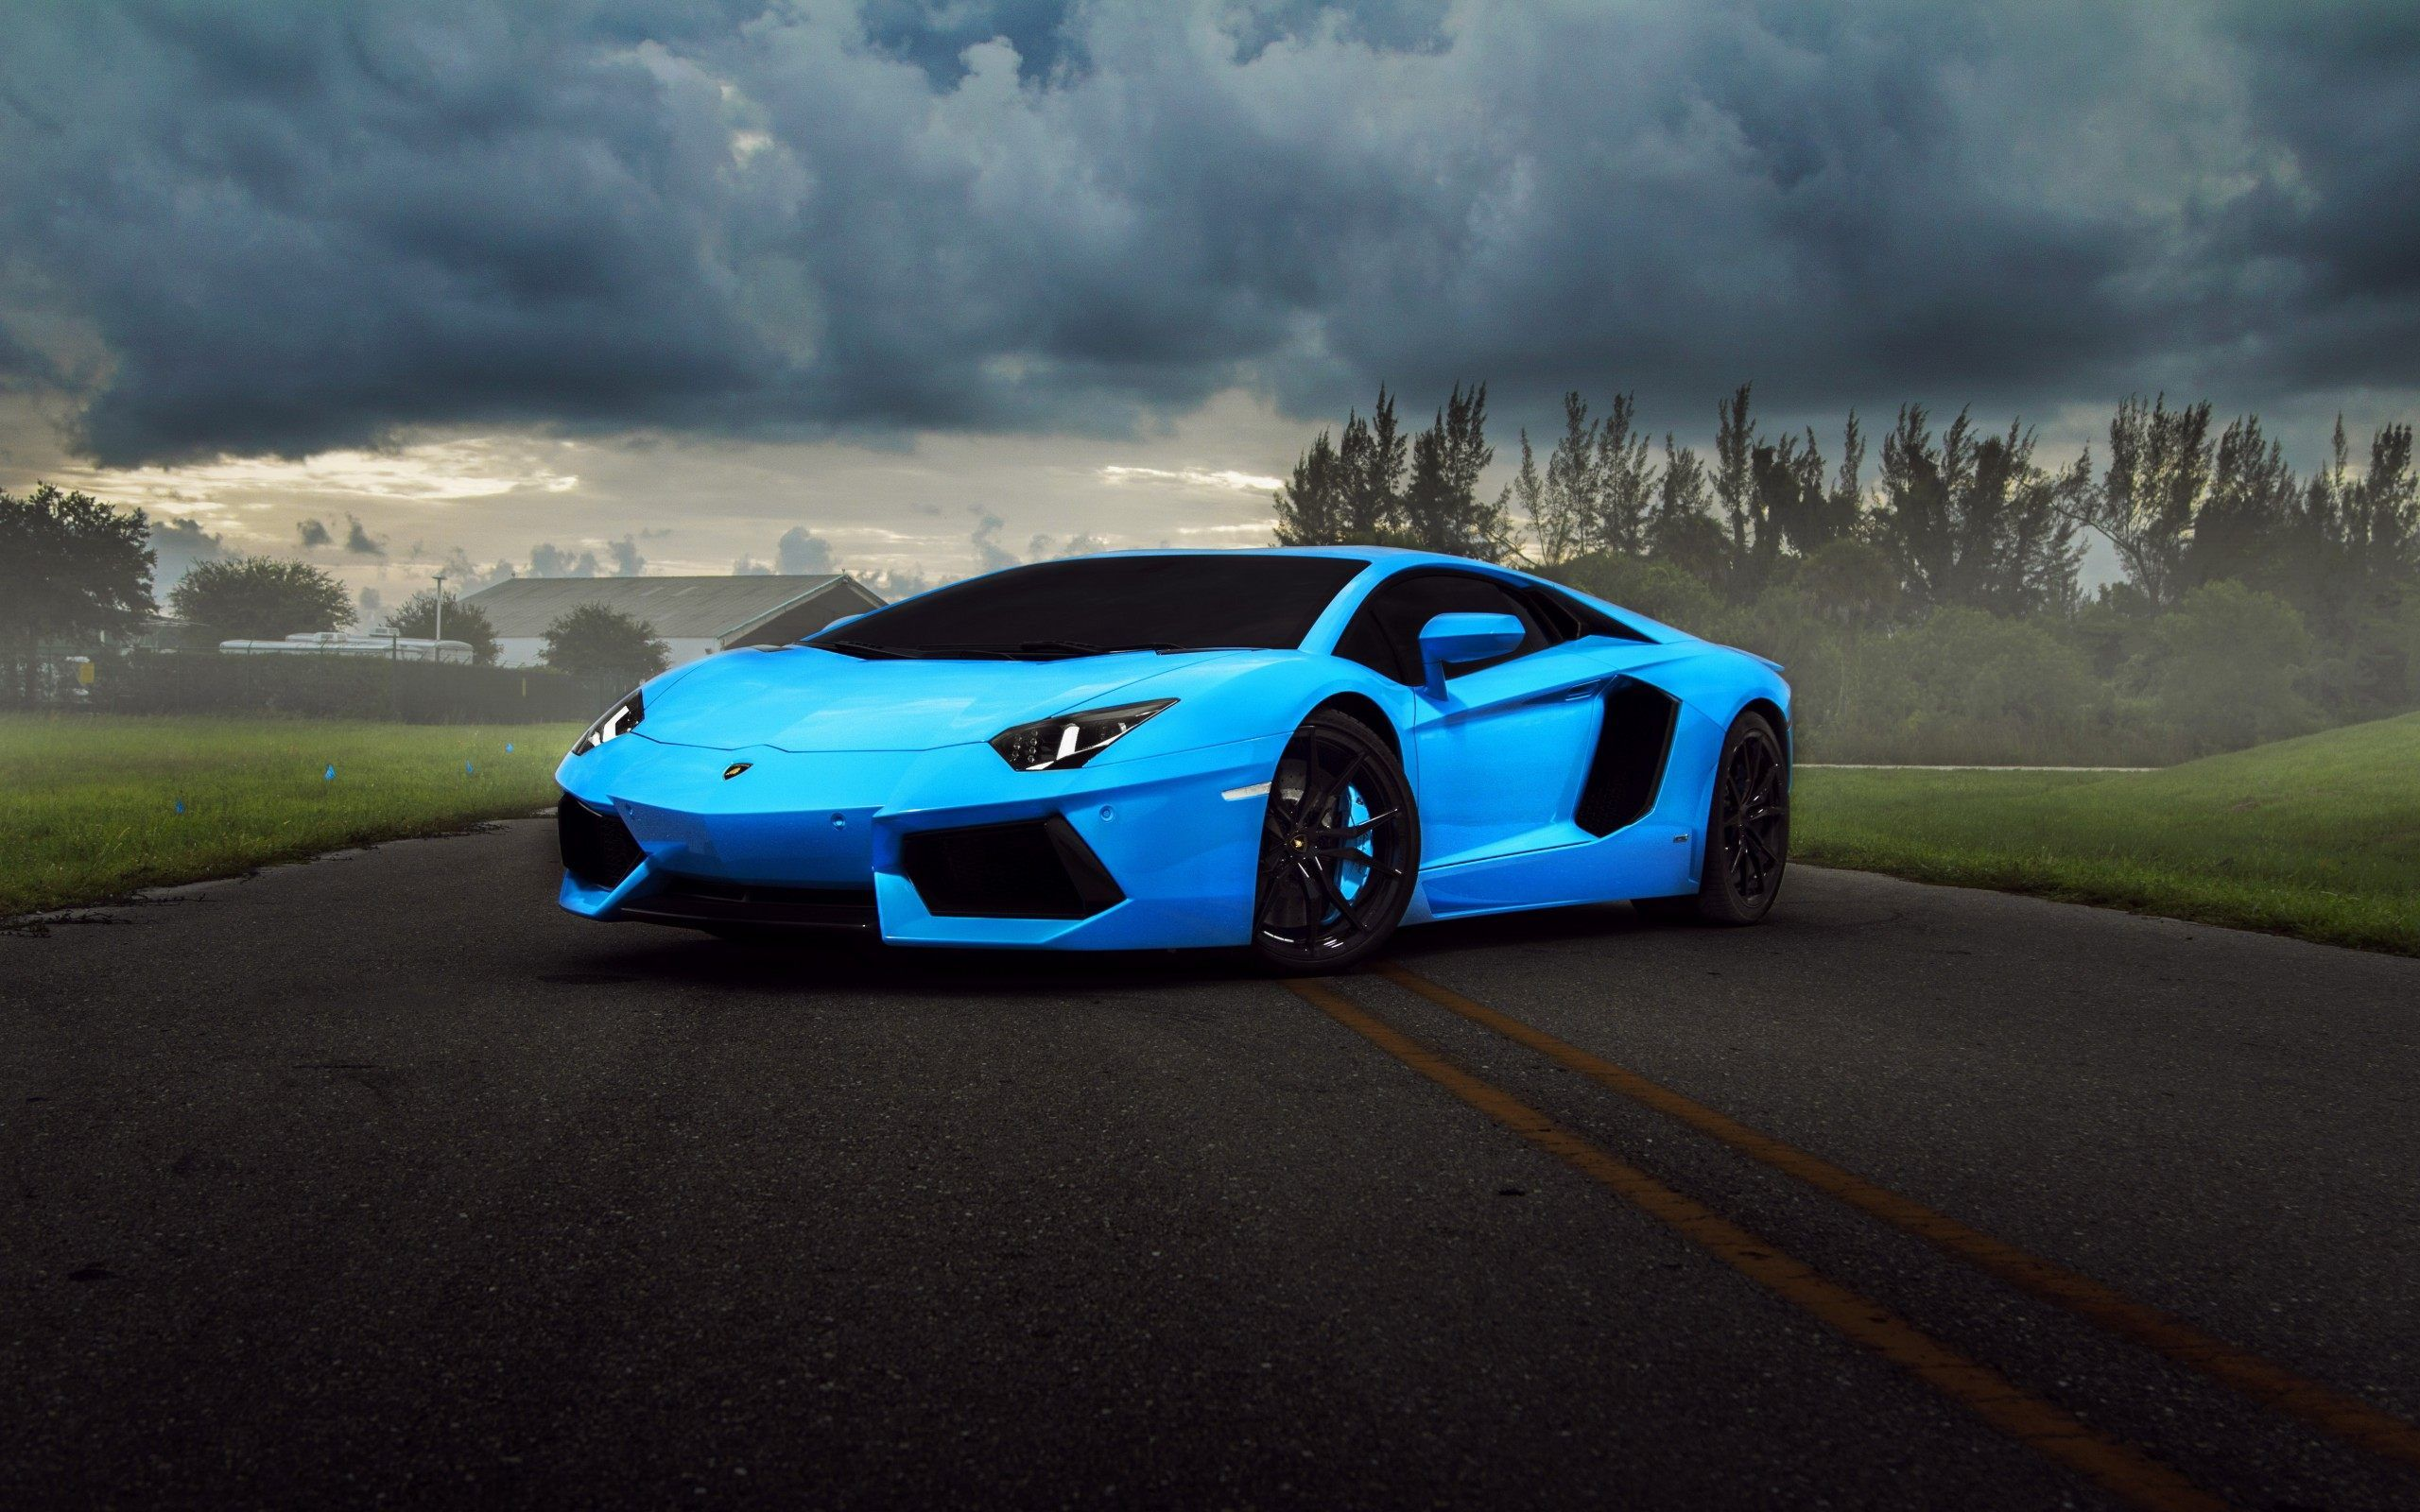 Blue lamborghini wallpapers free vehicles wallpapers - Car desktop wallpaper ...